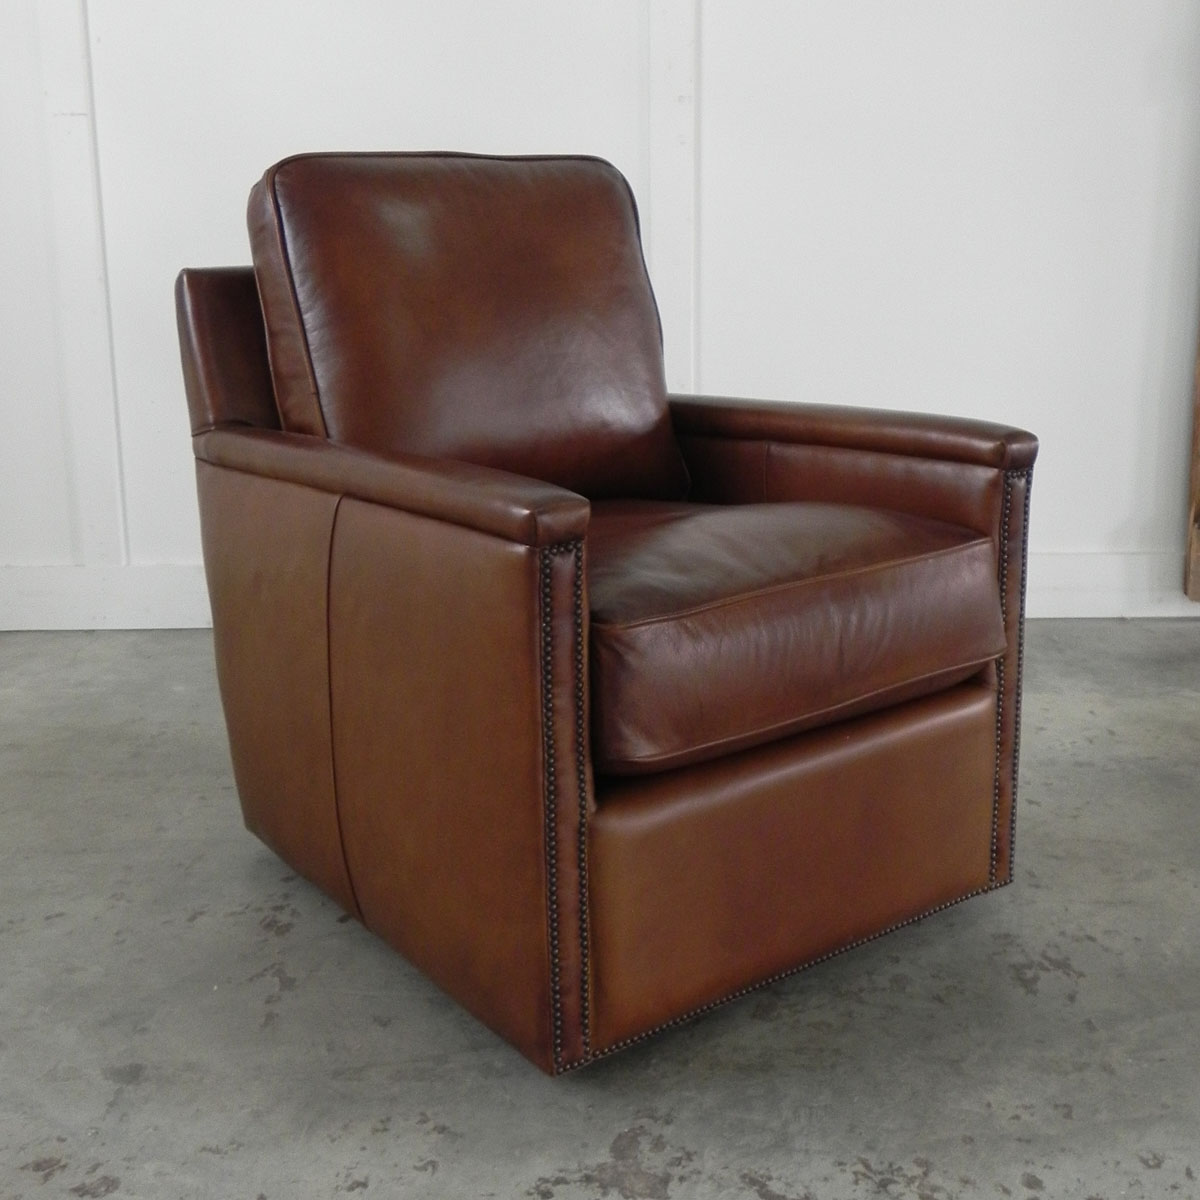 Super Nina Leather Swivel Chair Pdpeps Interior Chair Design Pdpepsorg